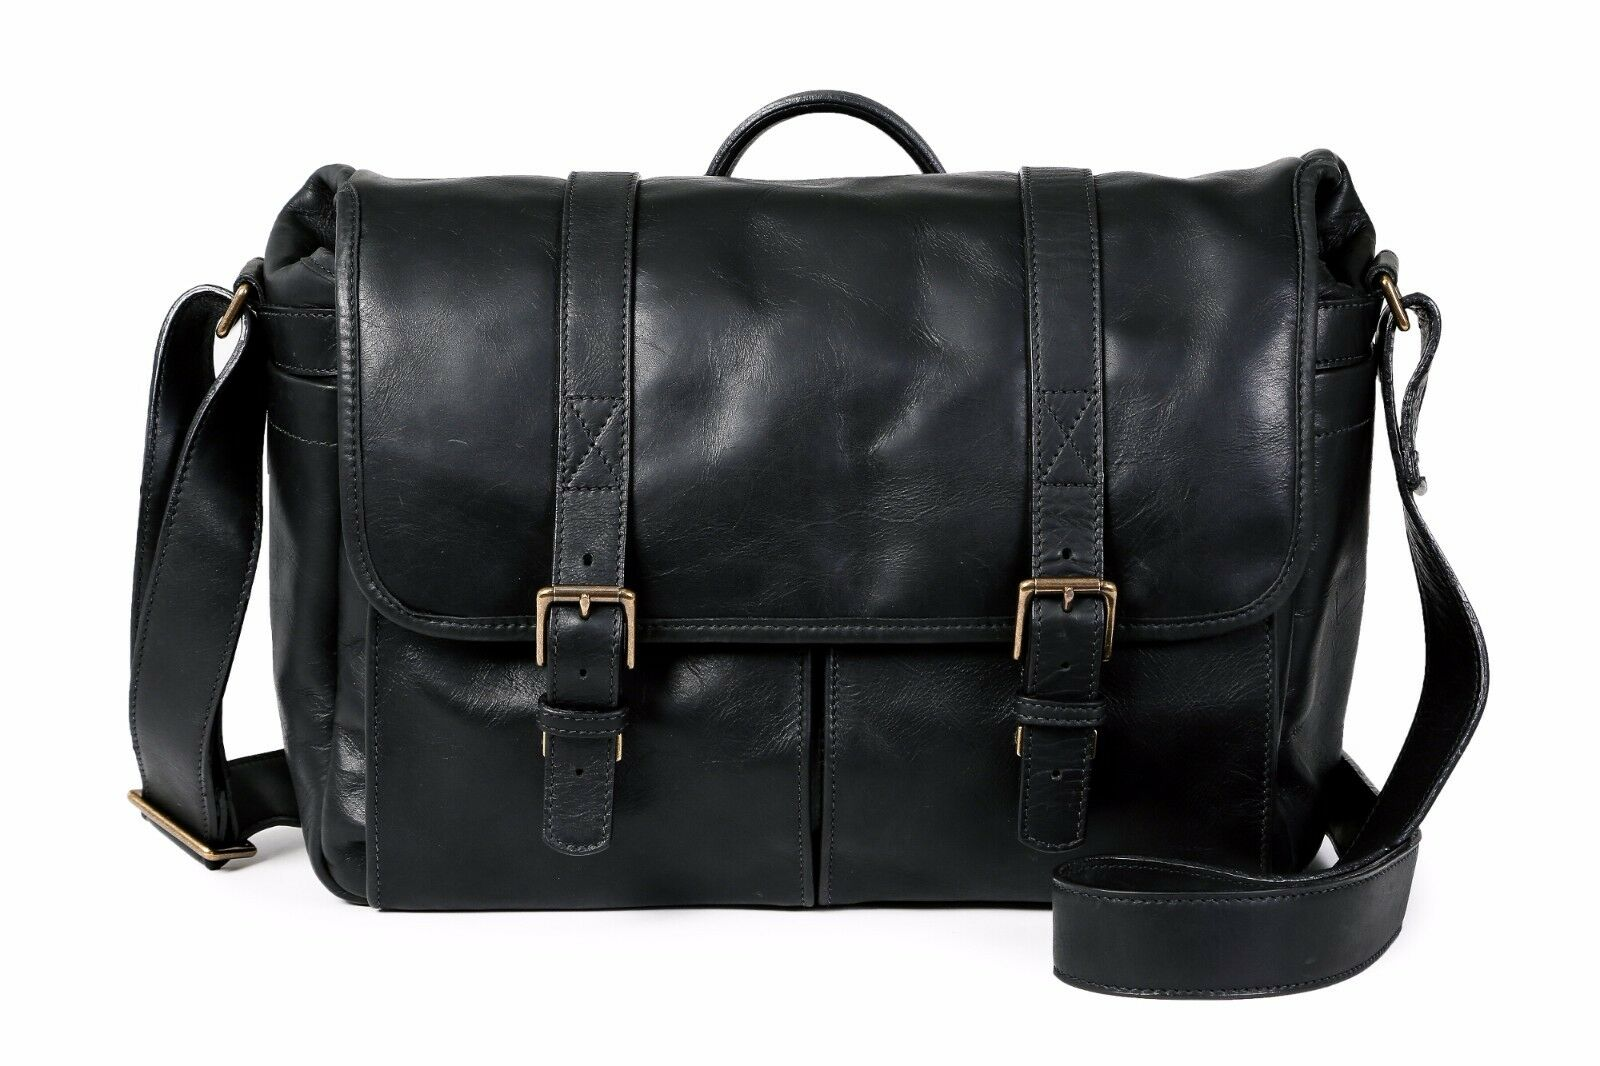 Ona Brixton Leather Camera Messenger Bag (Black) >Timeless Handcrafted Quality